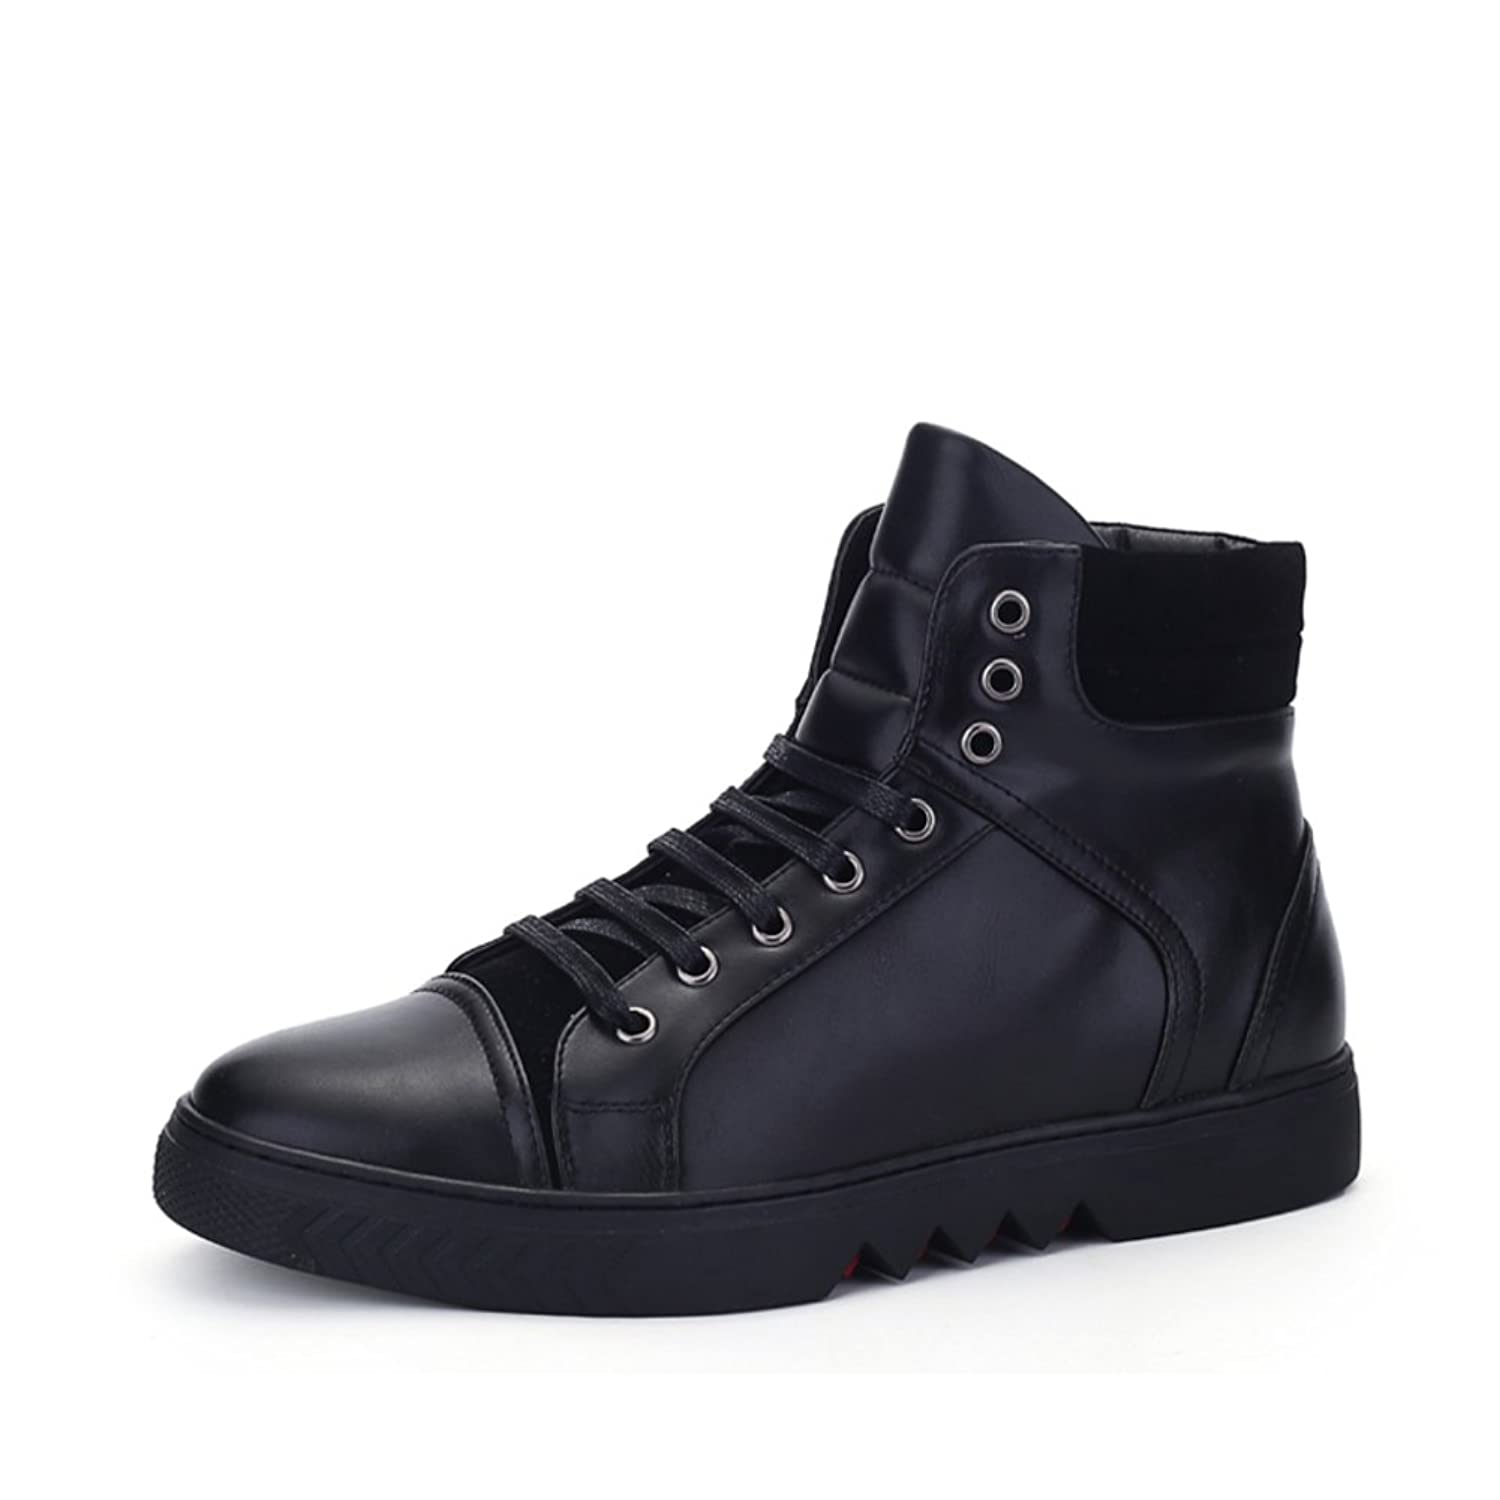 fashion trends men's boots/ autumn boots/English boots/ Frock shoes/ high Chelsea boots/Martin boots waterproof non-slip